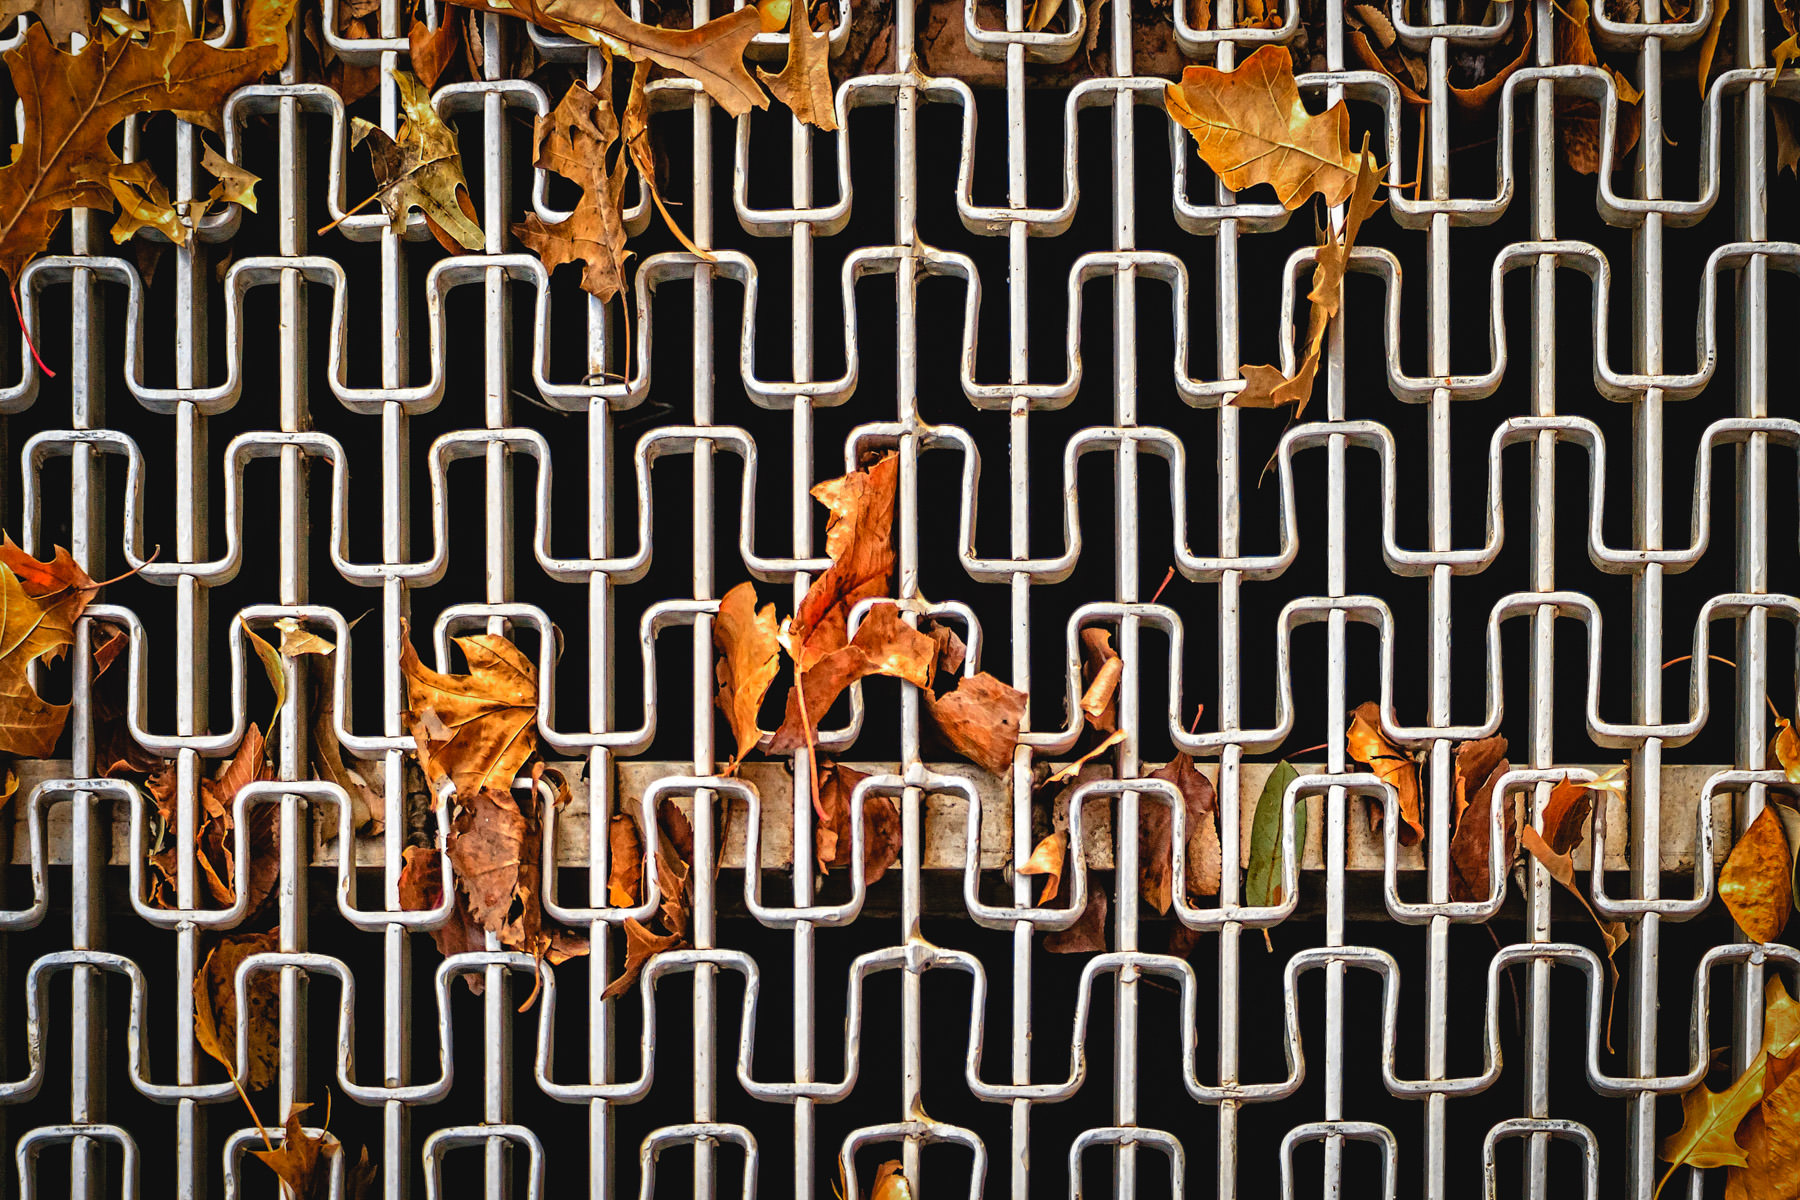 Leaves trapped in a grate in Wichita Falls, Texas.